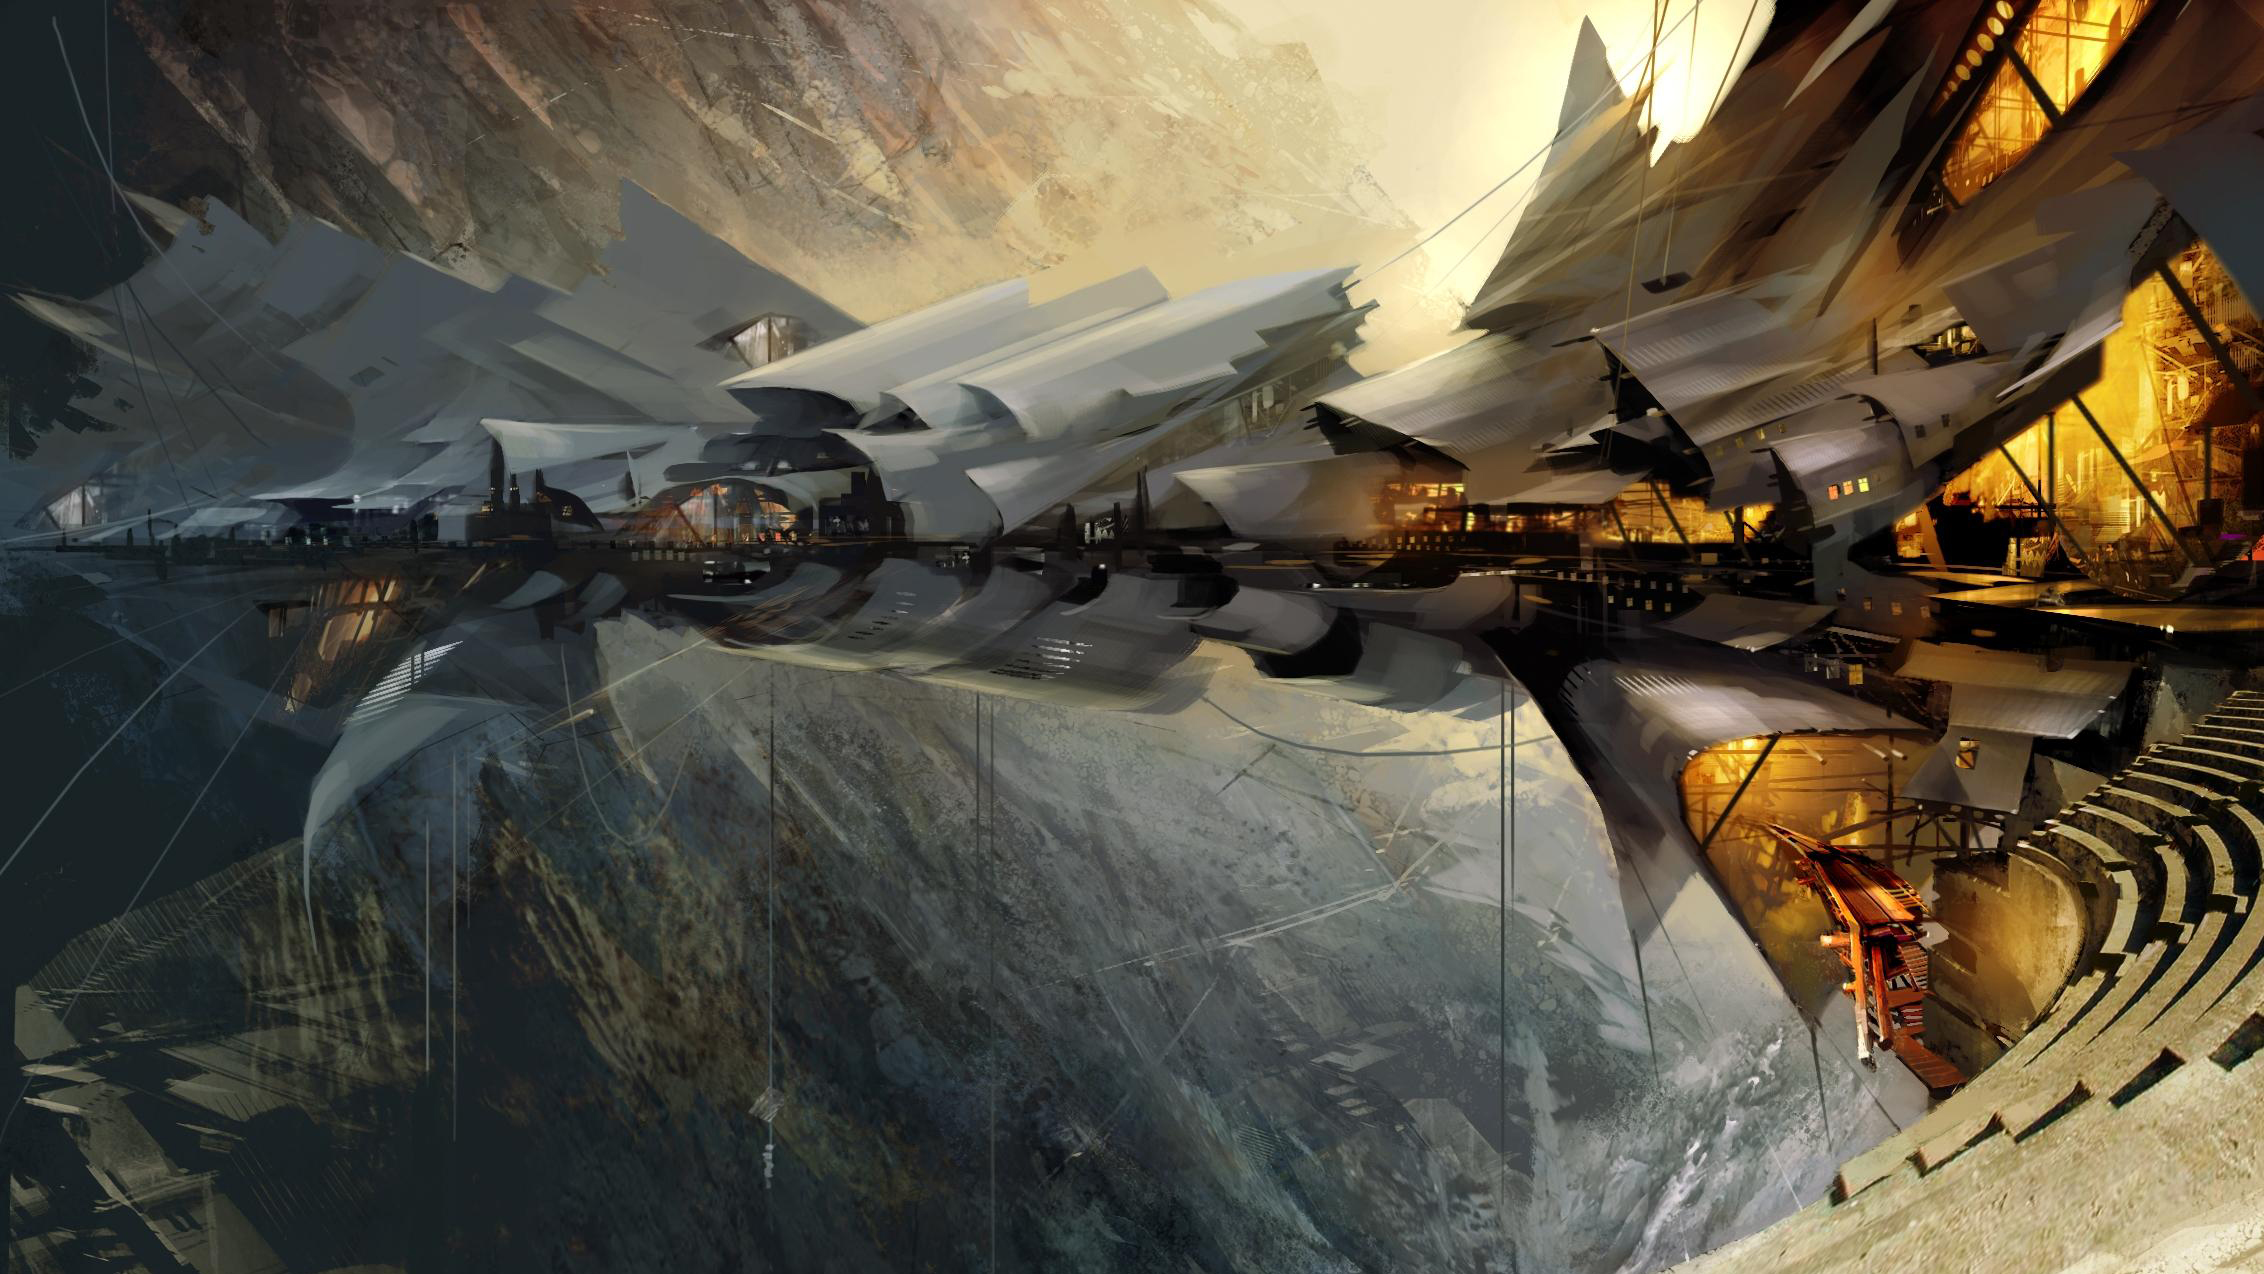 2264x1274 - Steampunk Wallpapers 16